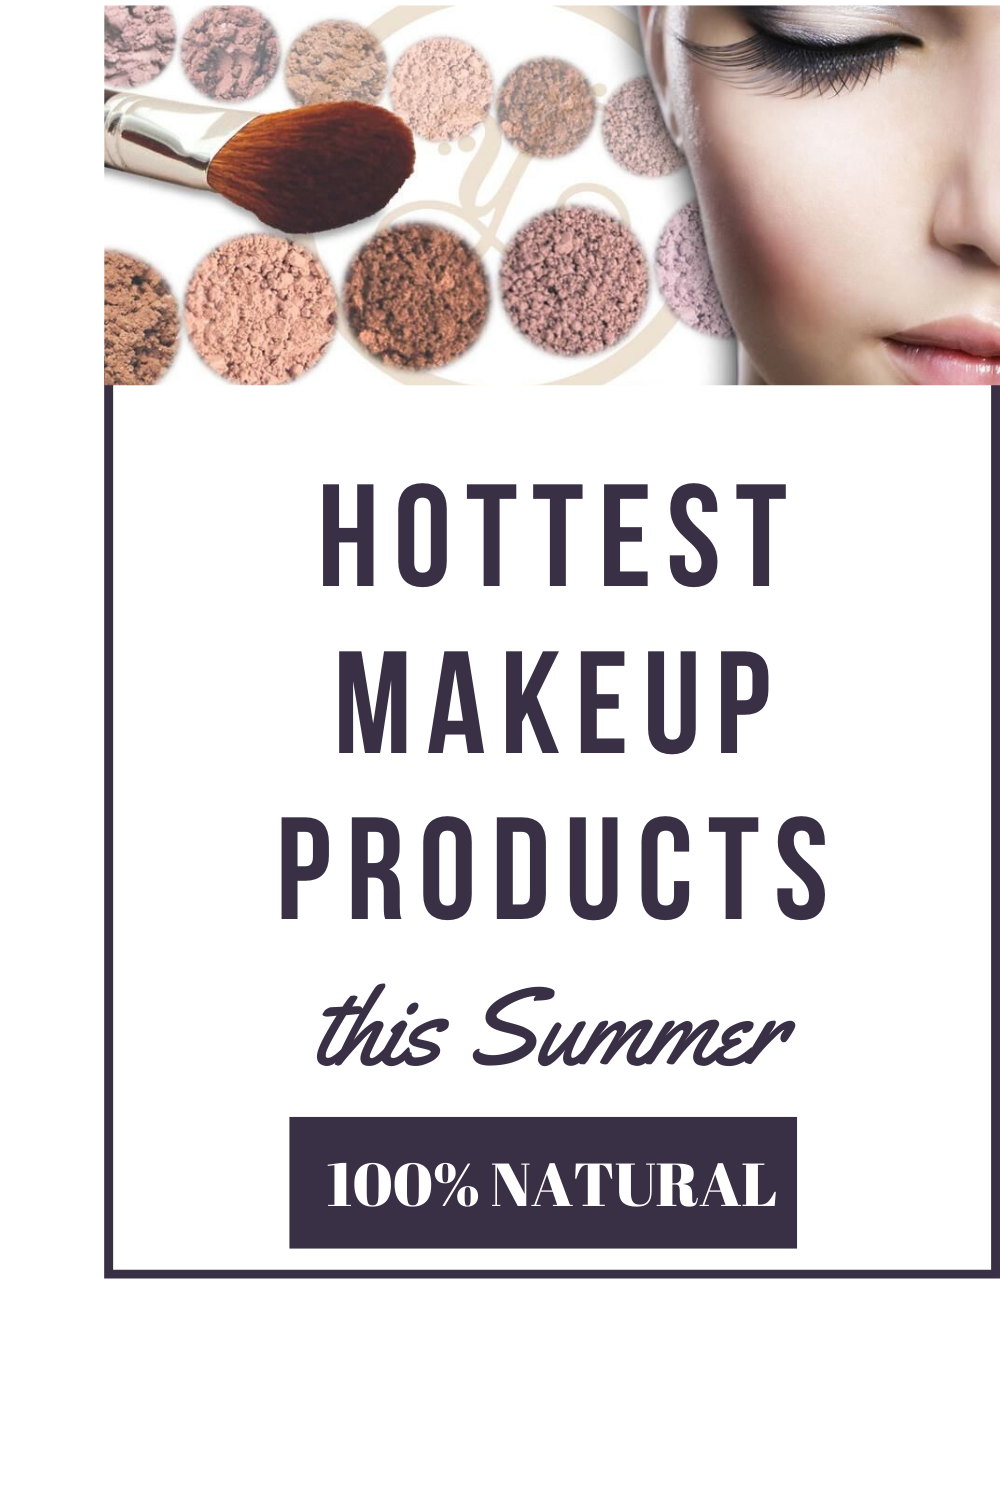 Are you spending a lot of money on high-end brands to put chemicals and toxins on your face? Did you know that toxins (depending) how long you use it can cause illnesses?  #100percentNatural #Natural #Notoxins #Nochemicals #NoAddedFragrance #MINERALMAKEUP #thebestMakeup #makeup #beauty #EYESHADOW #lipstick #makeupartist #NaturalSkinProducts #SKIN #PORES #goodforyourPores #cleanMakeup #healthy #happy #Brighter #Glow #health #Wellness #NOWASTE #takeouttheBAD #freeskin #CLEANFEELING #clean #style